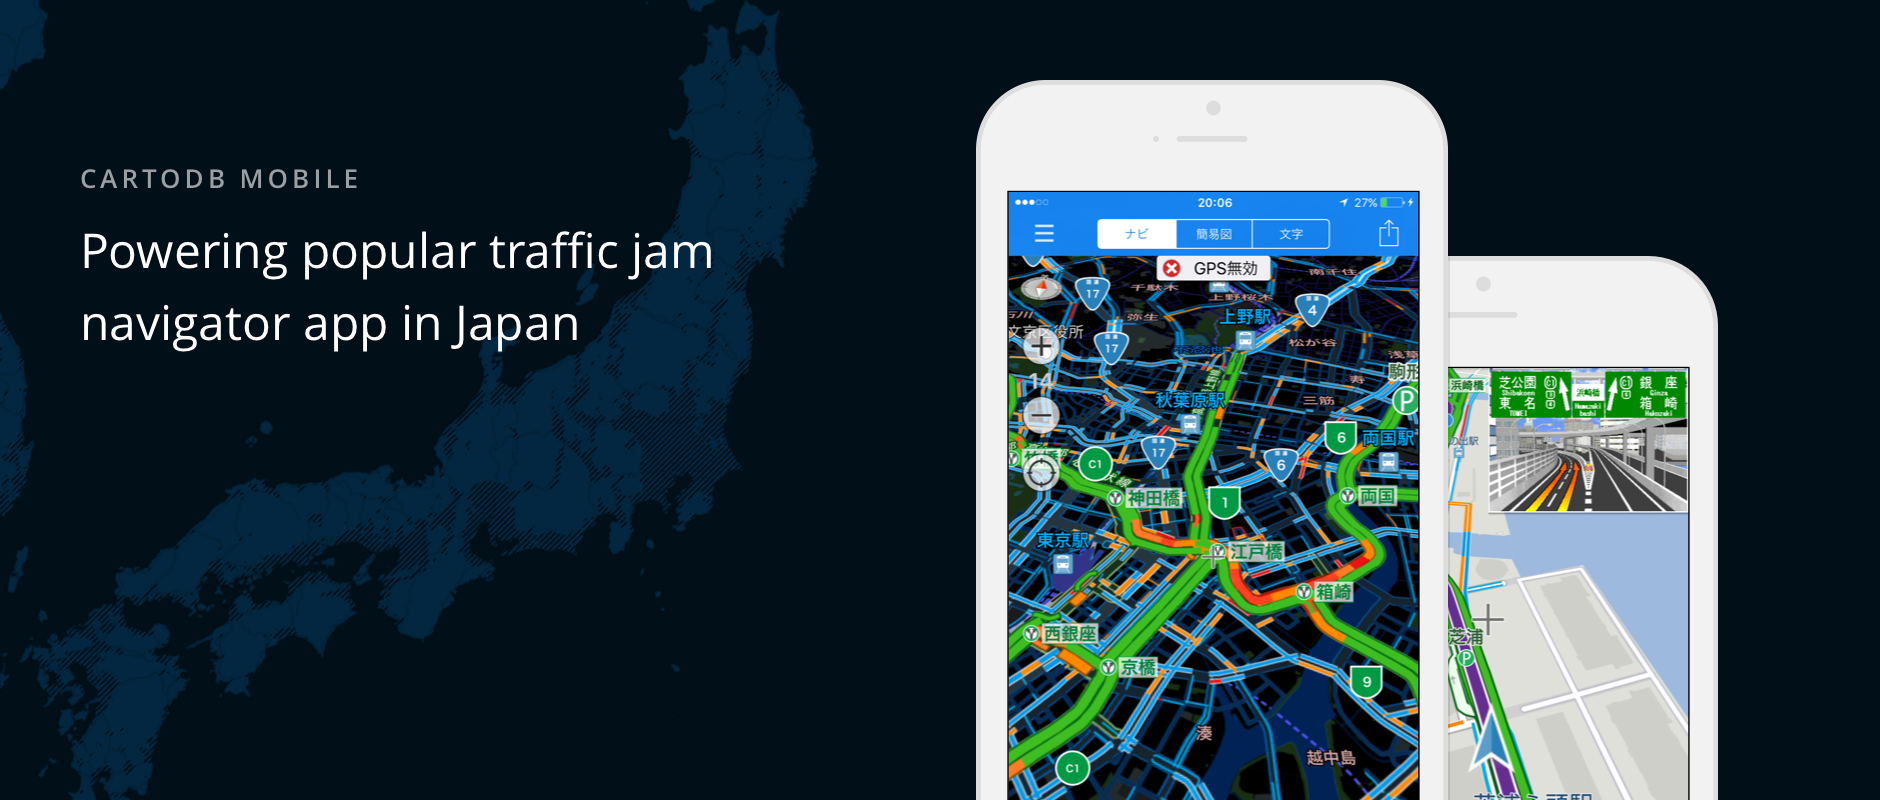 The Mobile SDK Powers a Popular Traffic Jam Navigation App in Japan